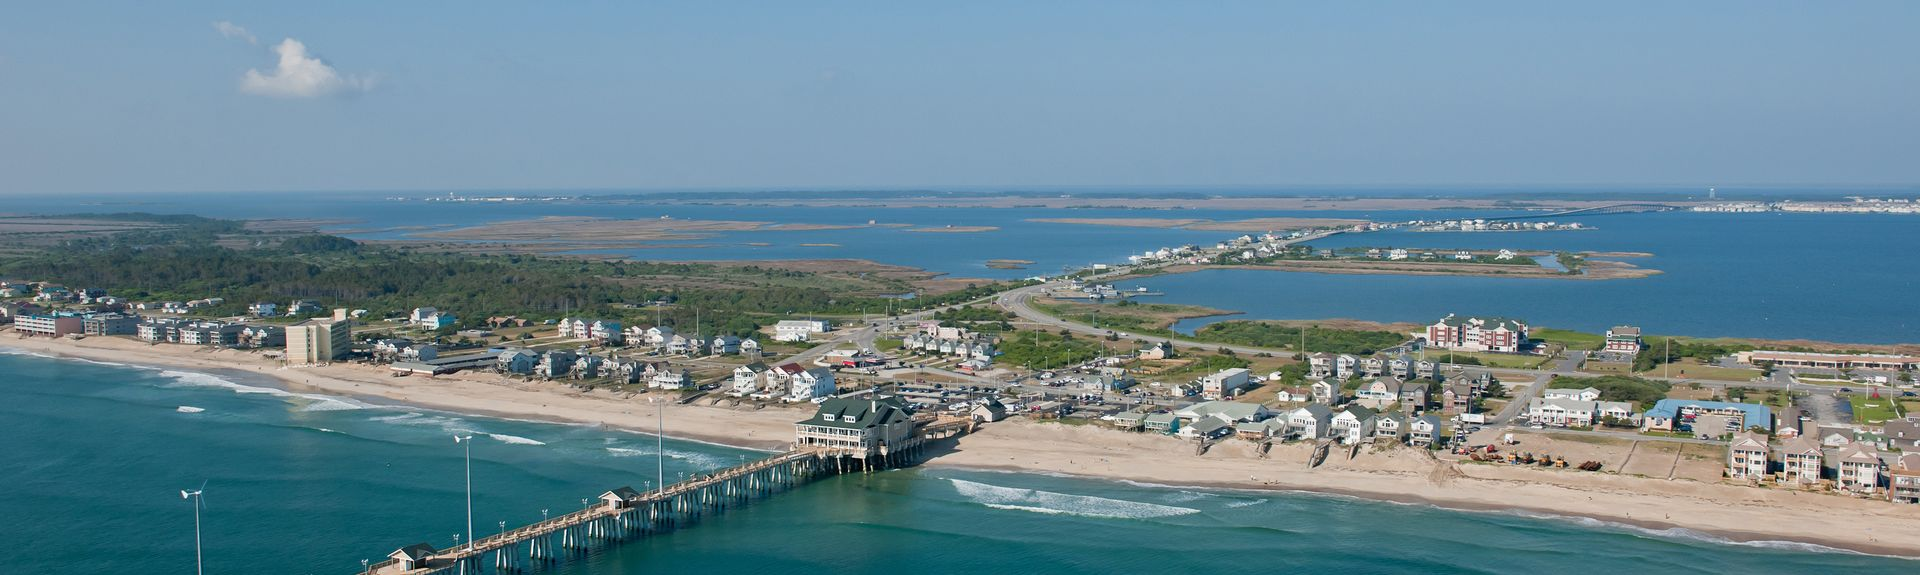 Nags Head, Carolina do Norte, Estados Unidos